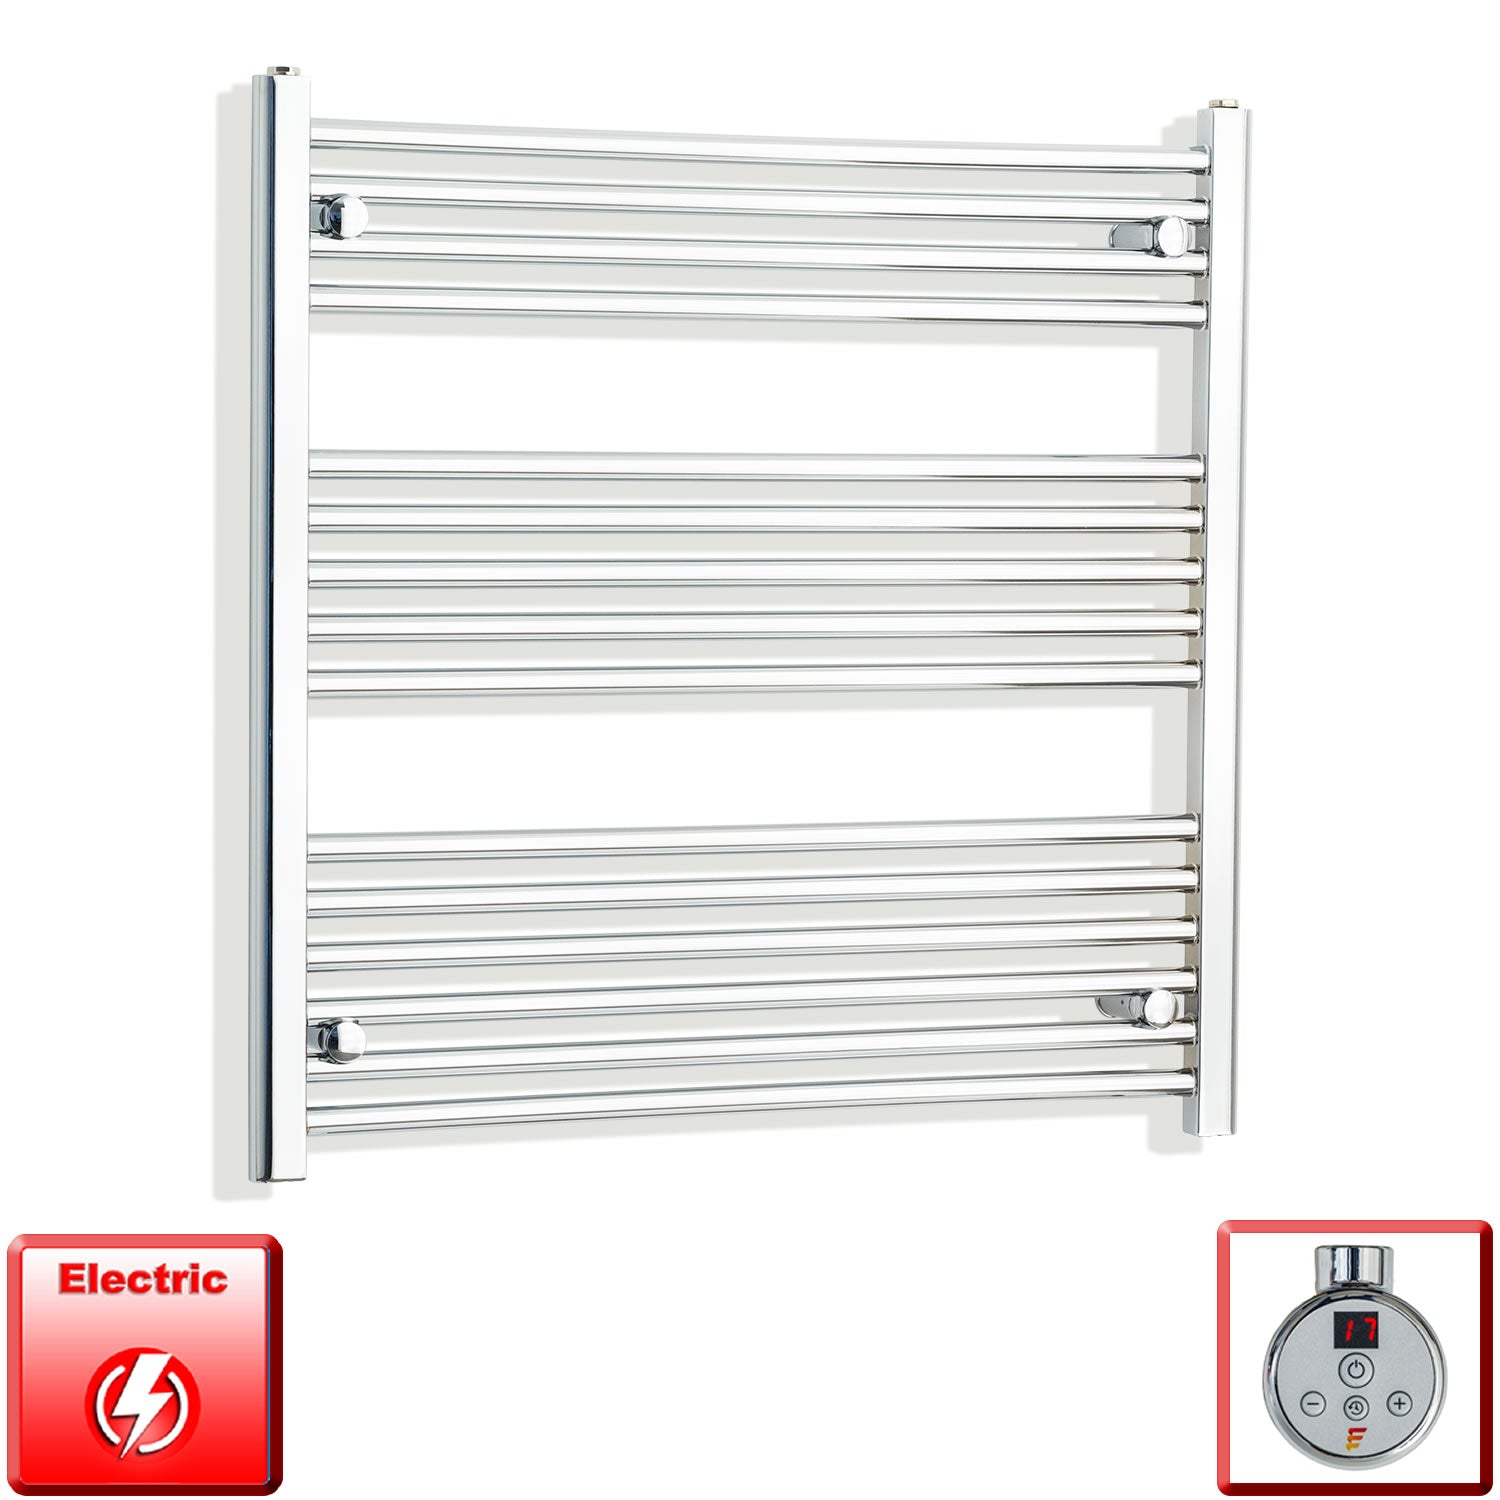 800mm Wide 800mm High Pre-Filled Chrome Electric Towel Rail Radiator With Thermostatic DIGI Element